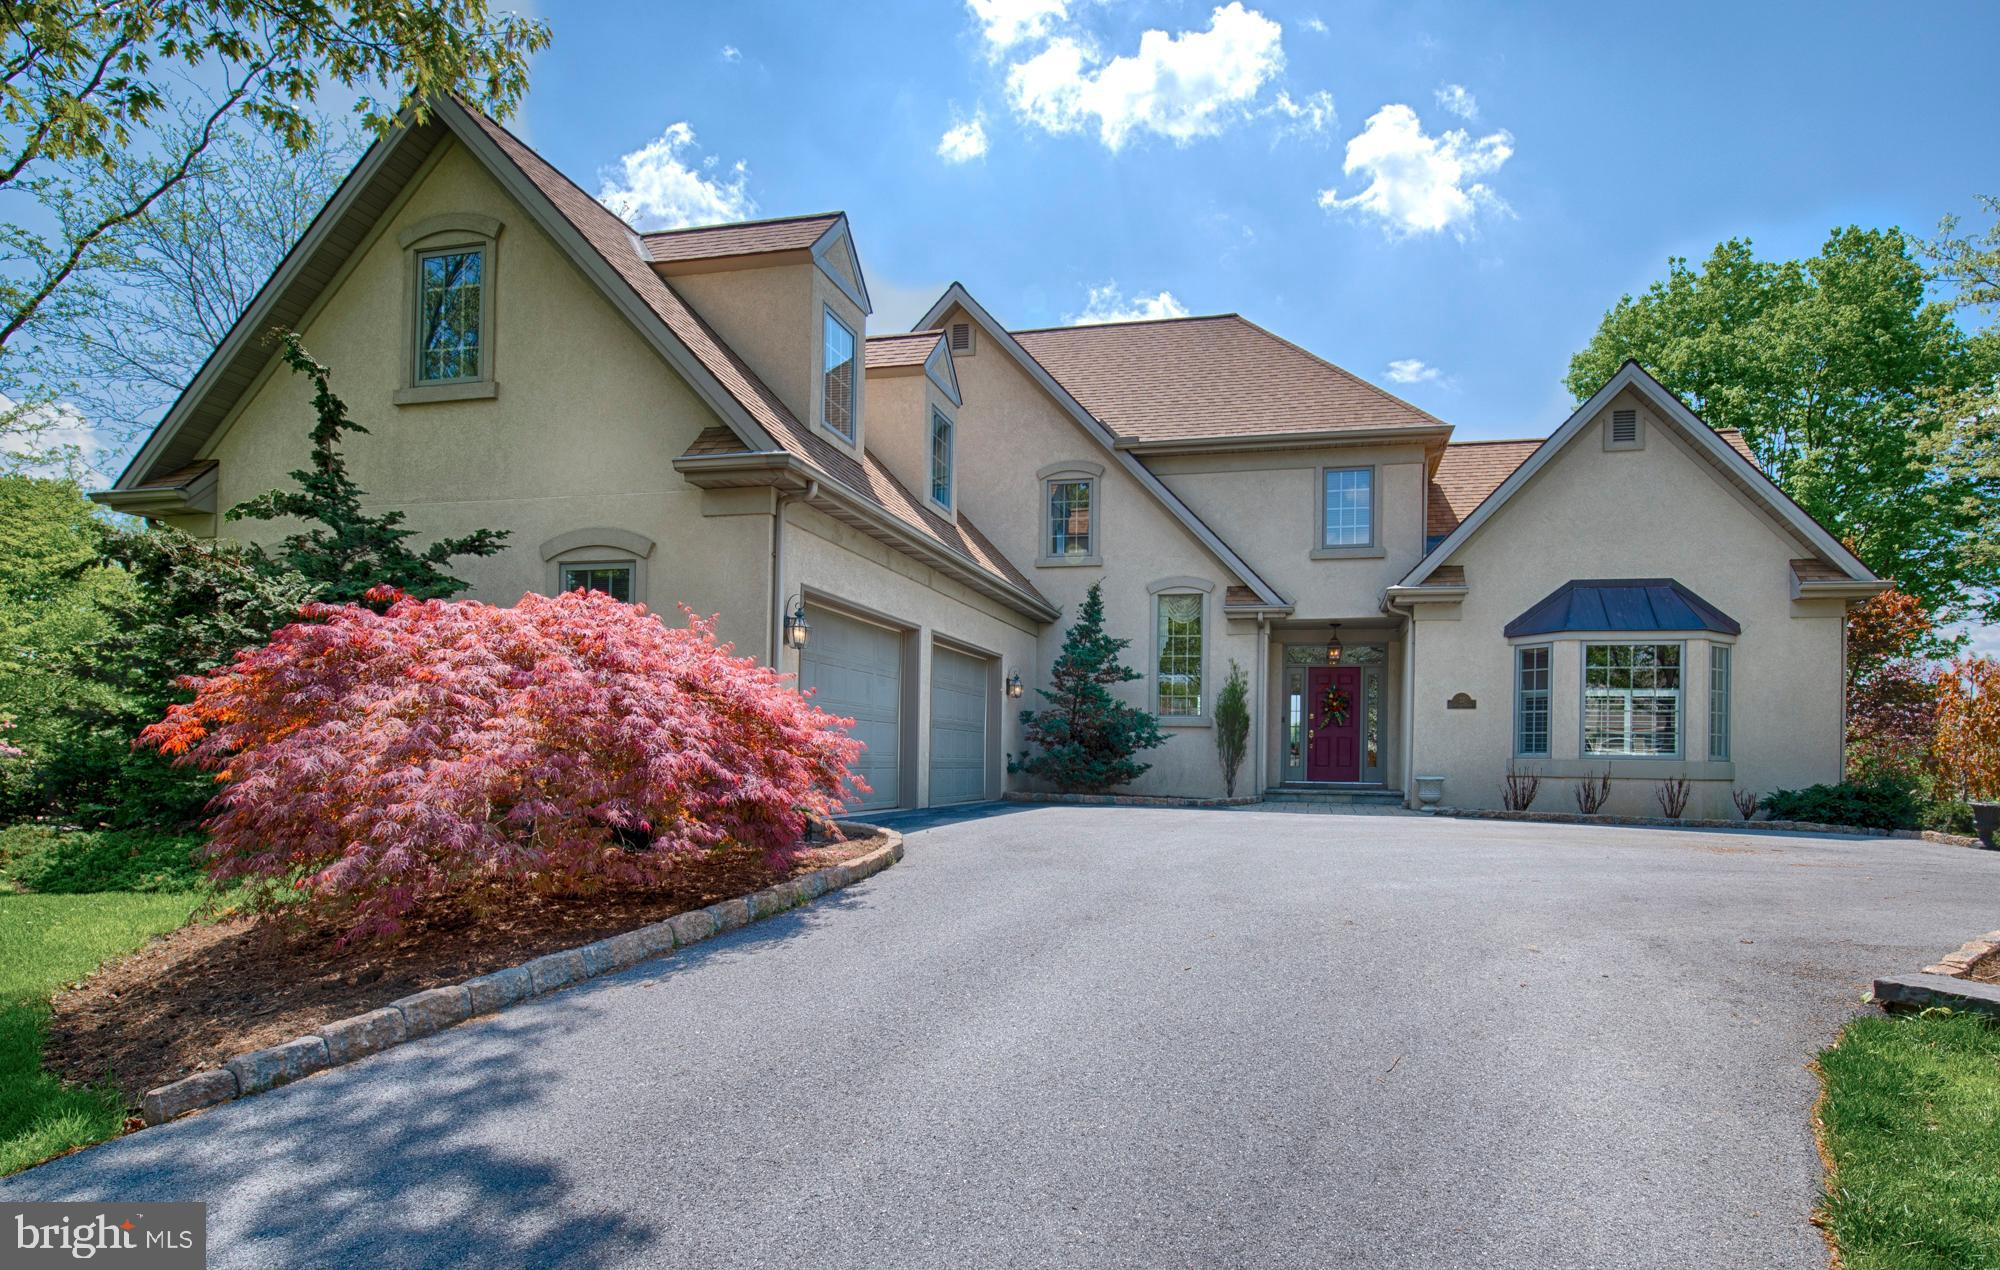 22 LAKELAND Ct, Lititz, PA, 17543